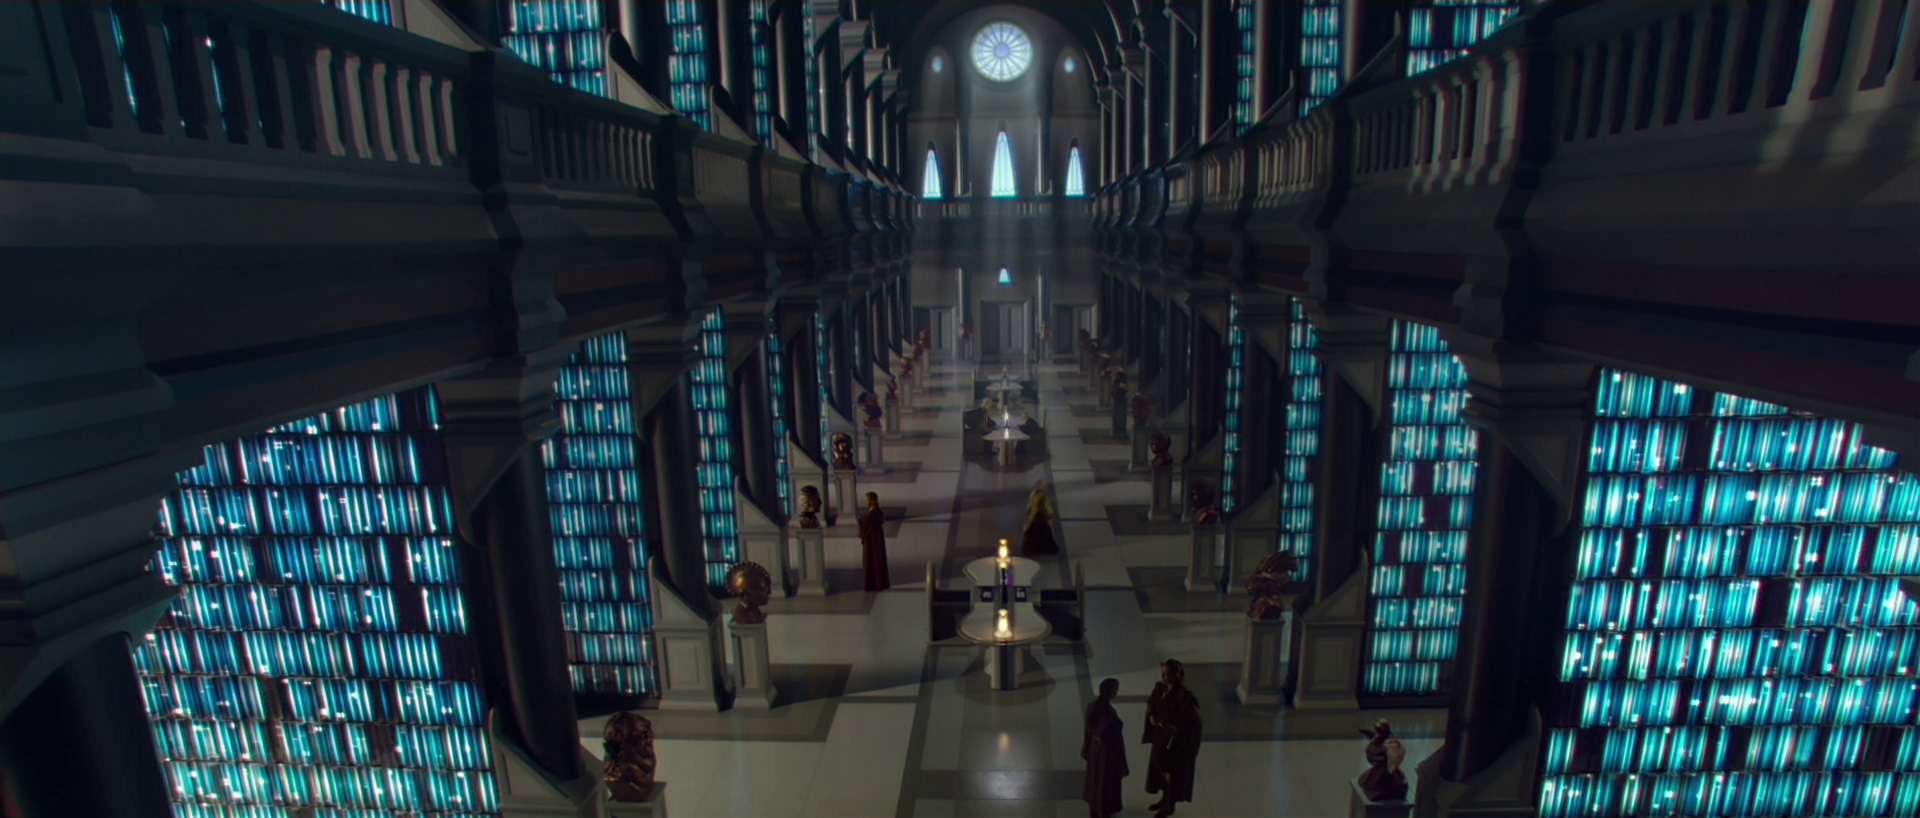 Jedi library from Star Wars